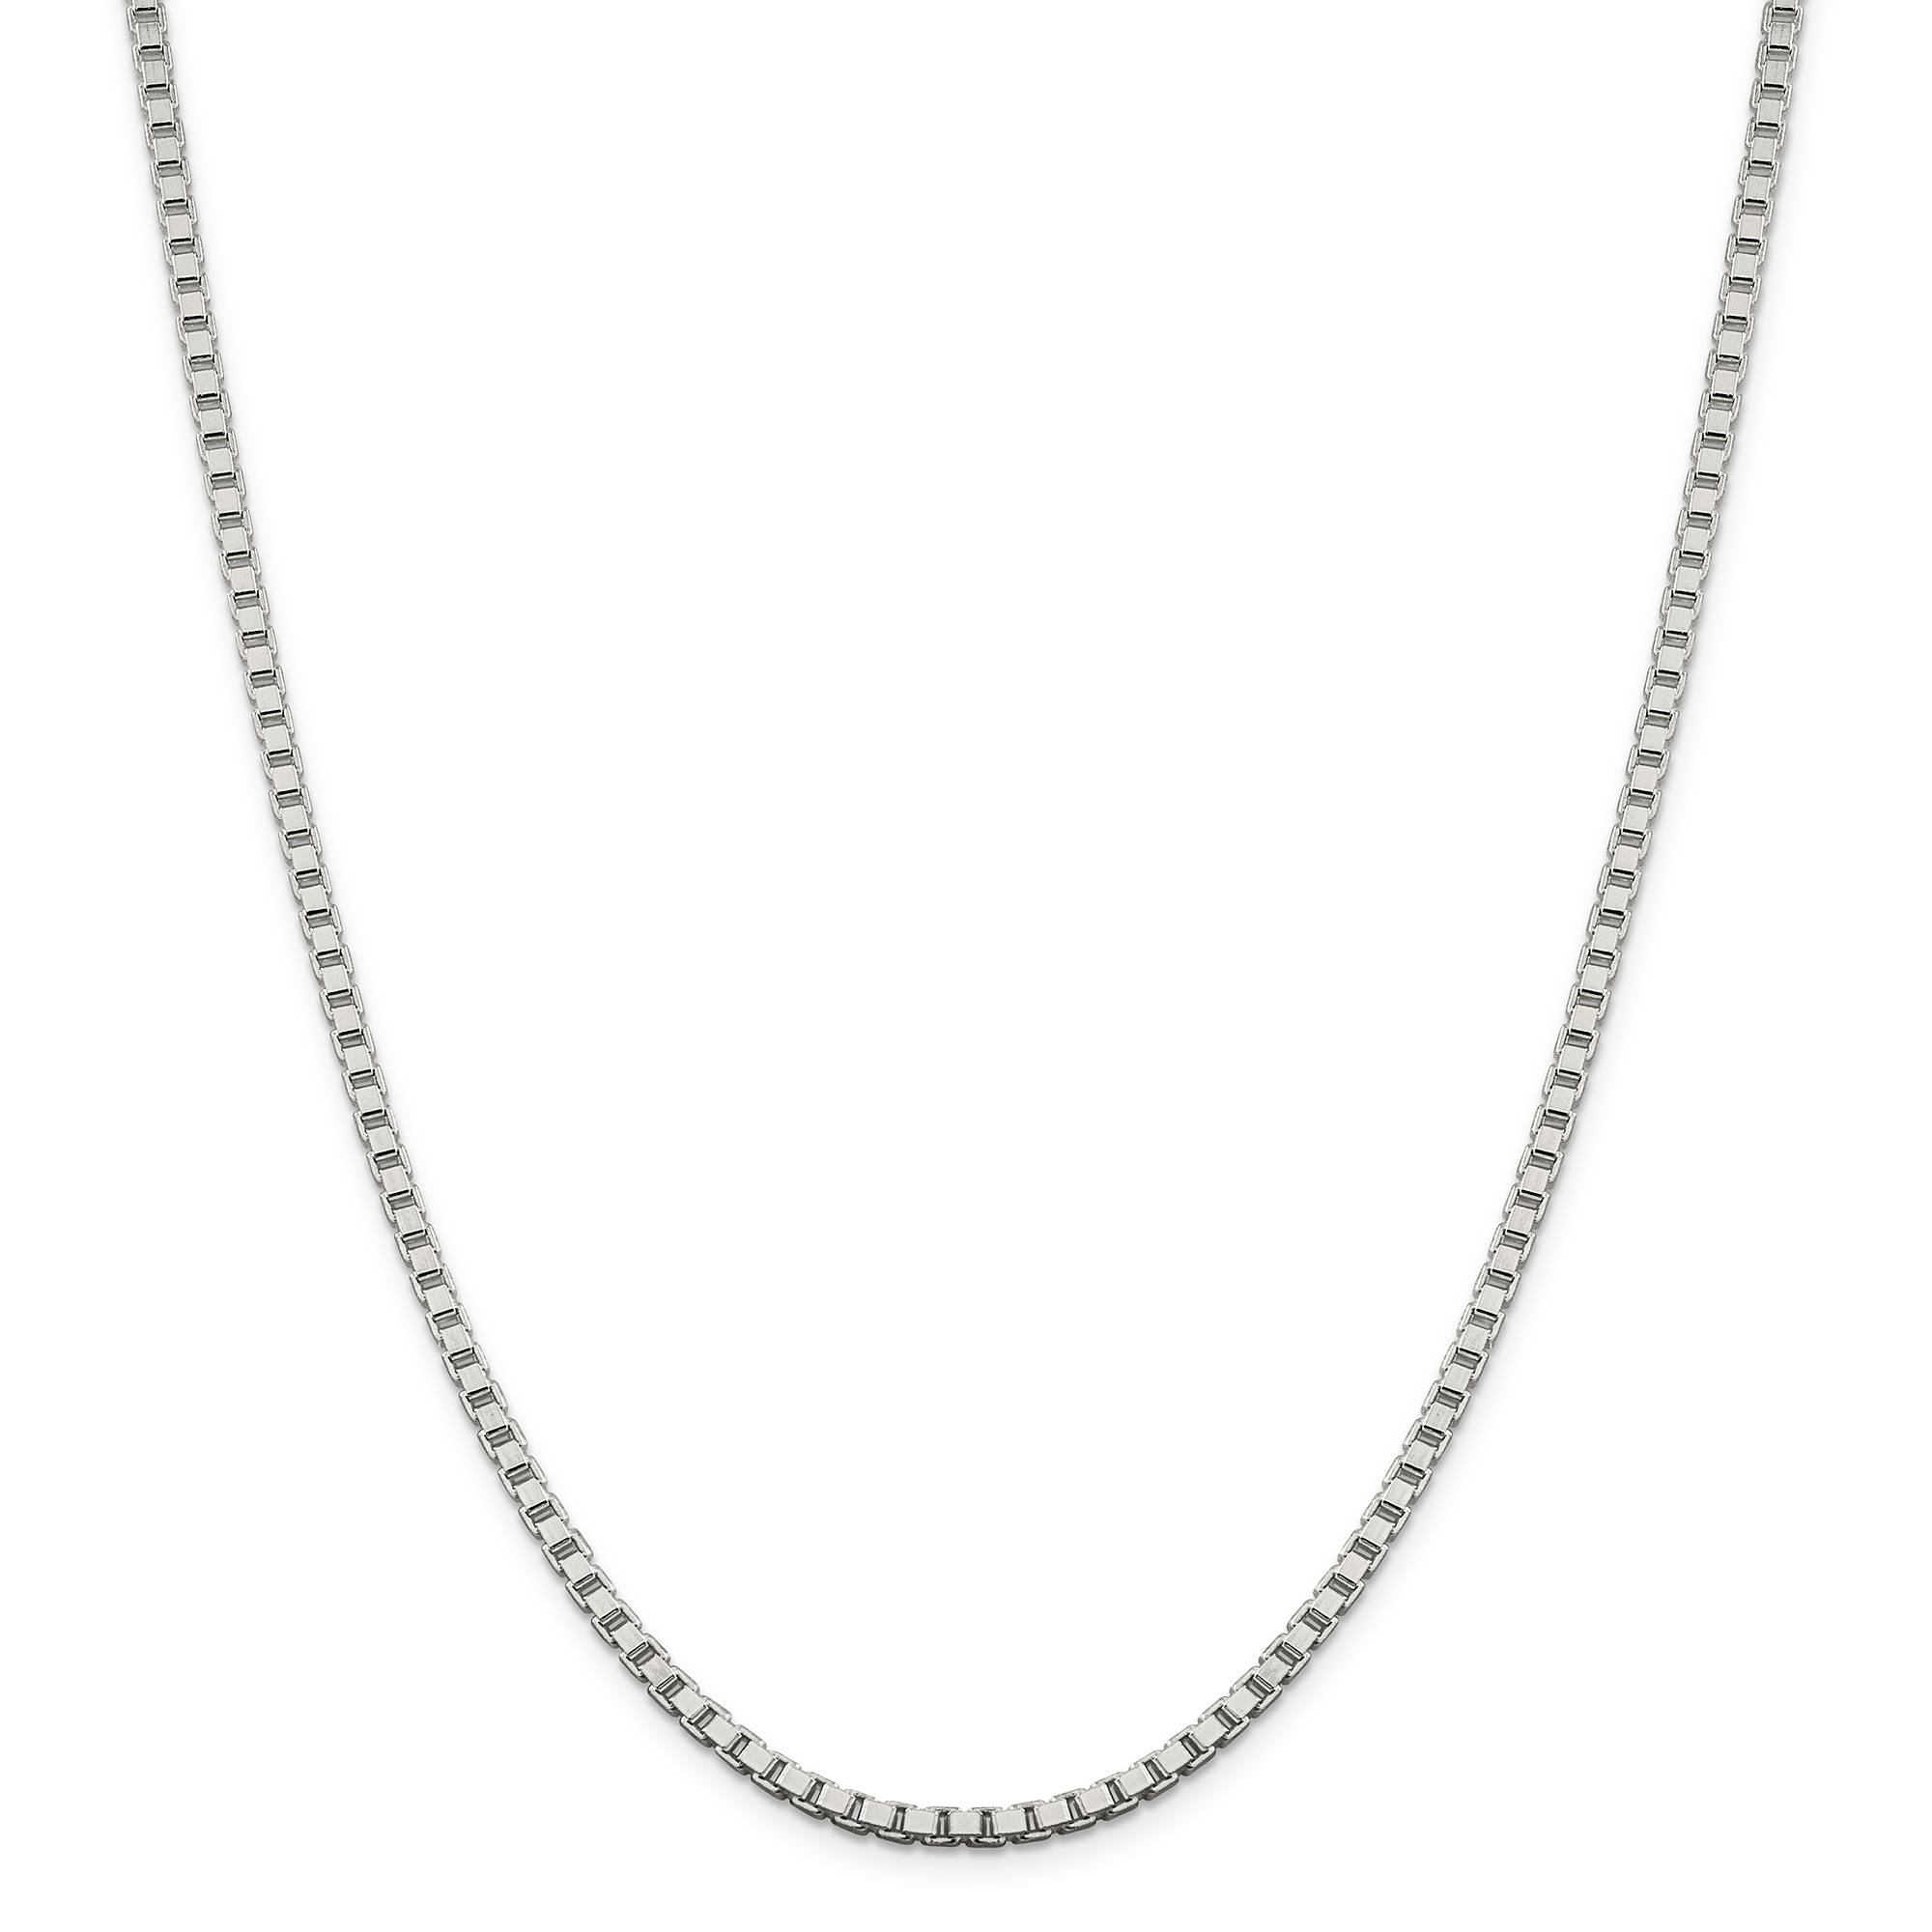 925 Sterling Silver 3.25mm Box Chain